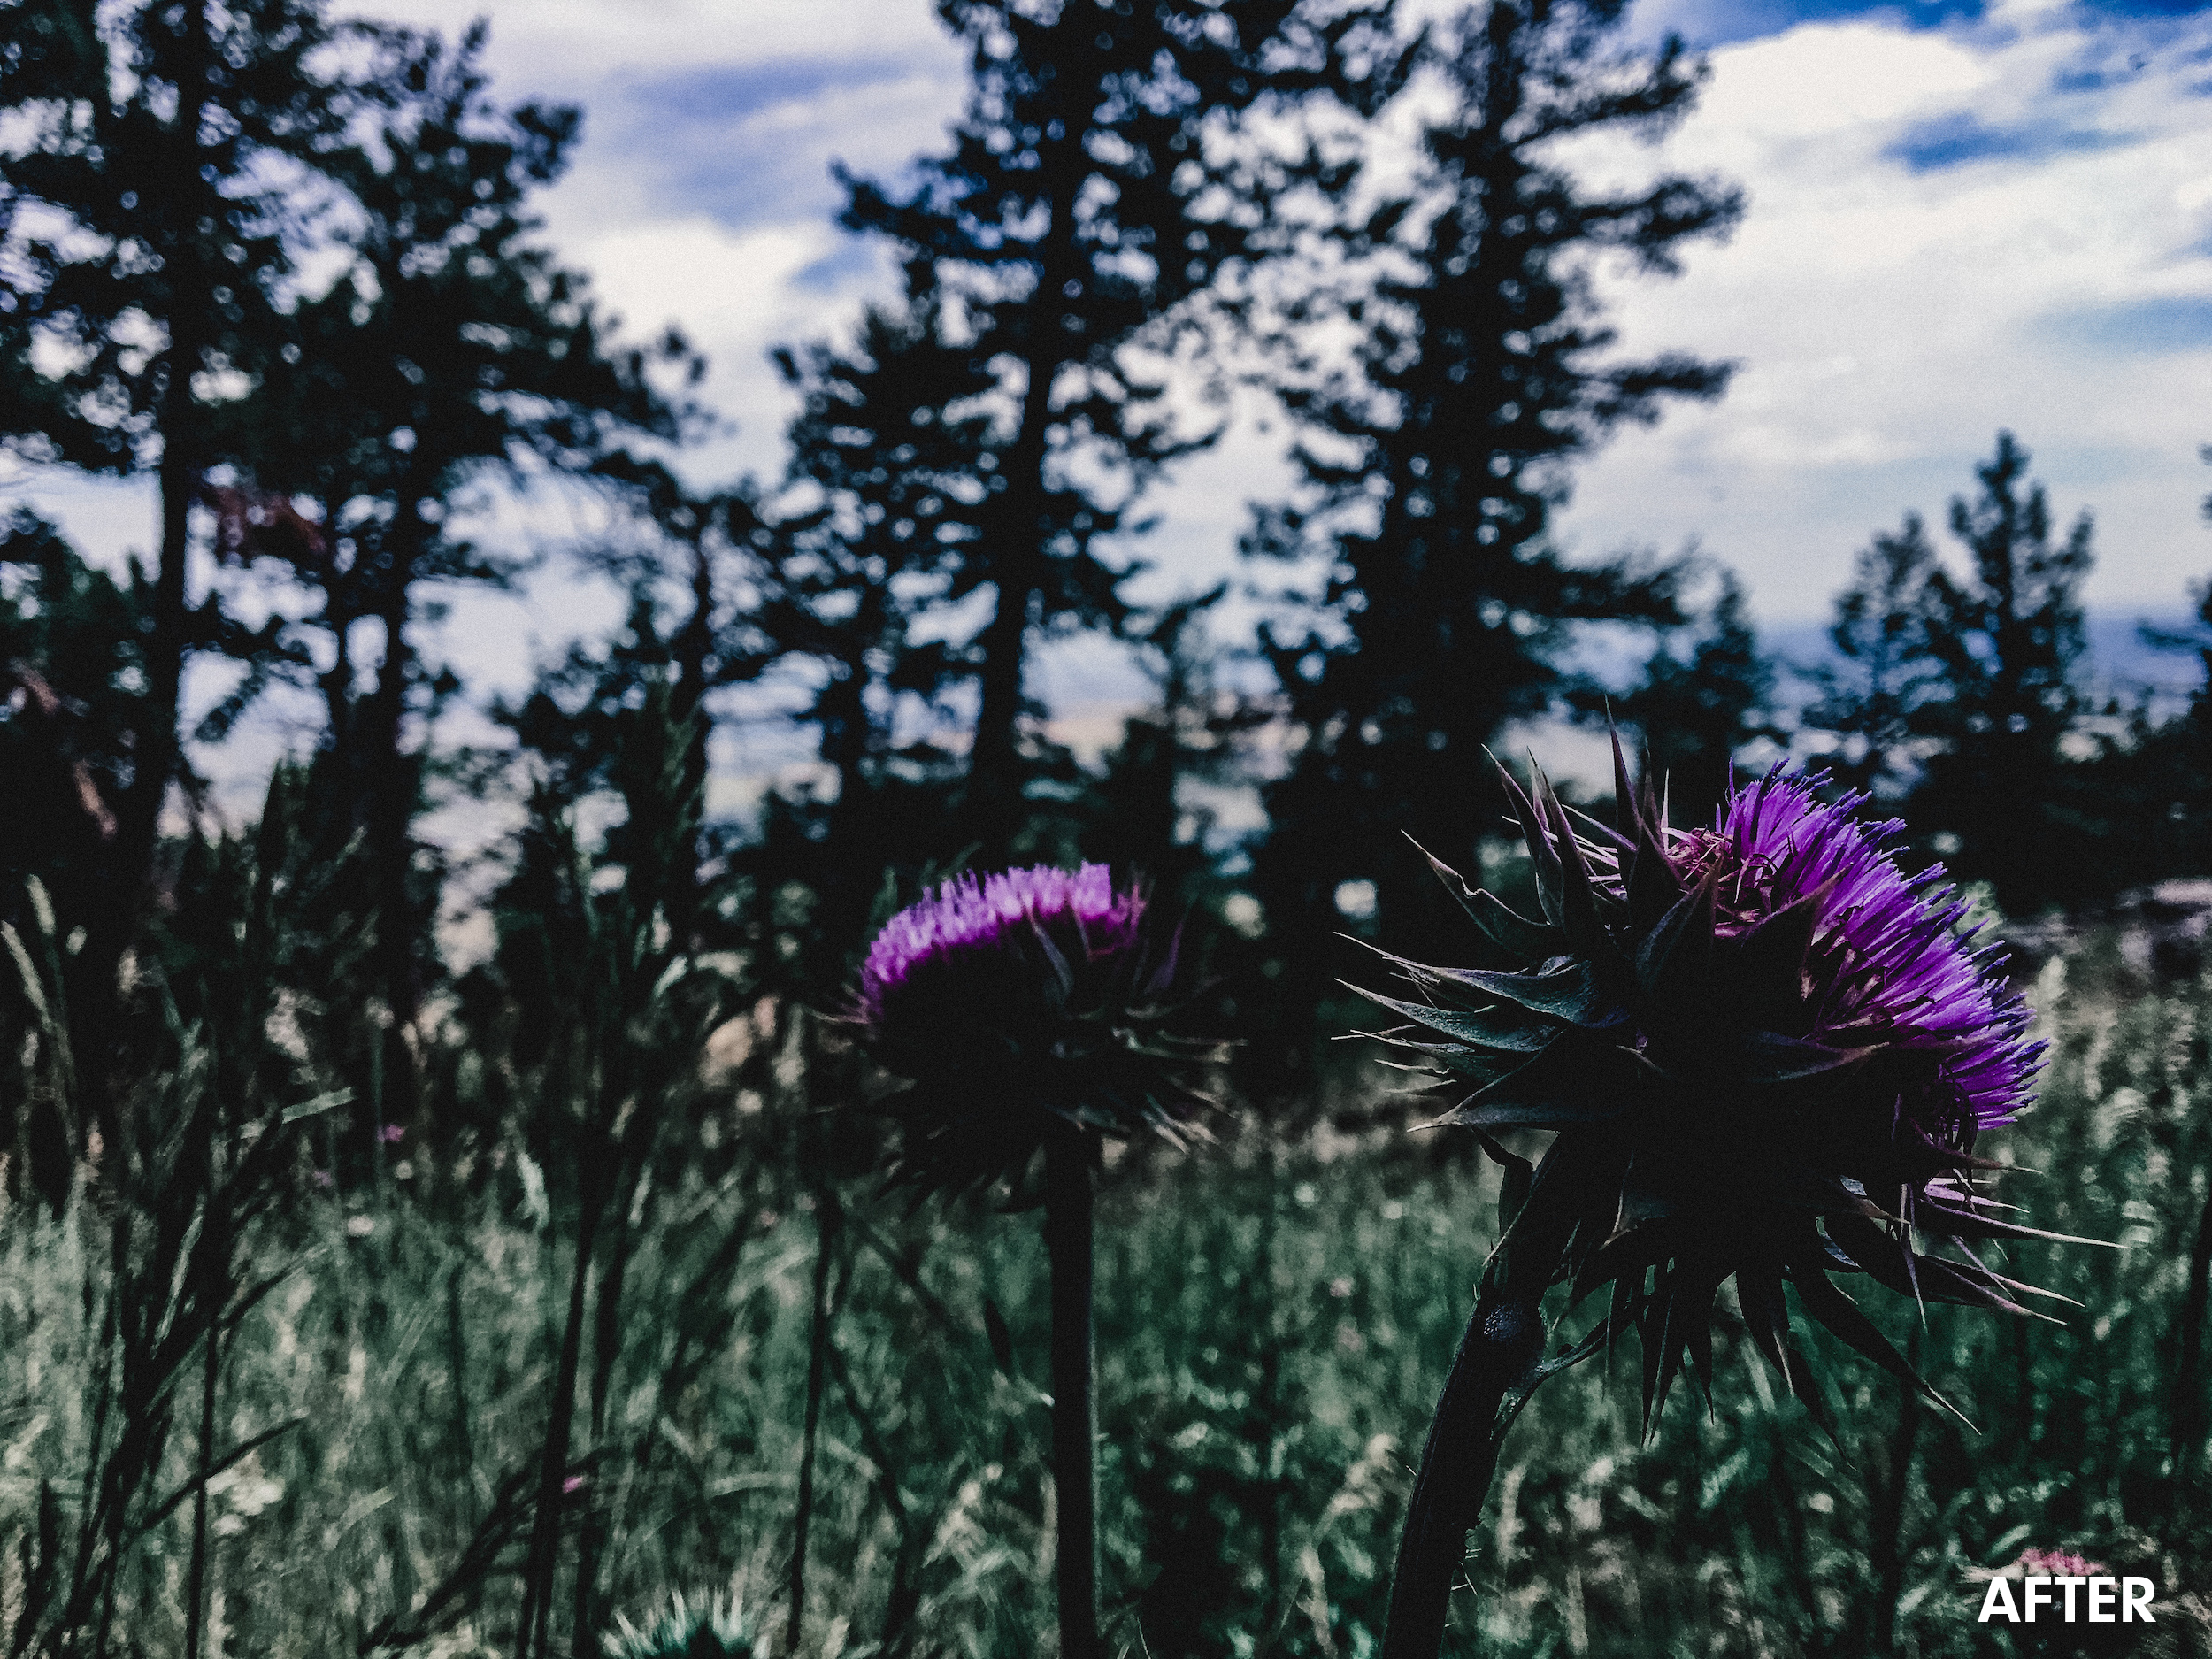 moody-colorado-flowerchickpeach-lightroom-presets6.jpg